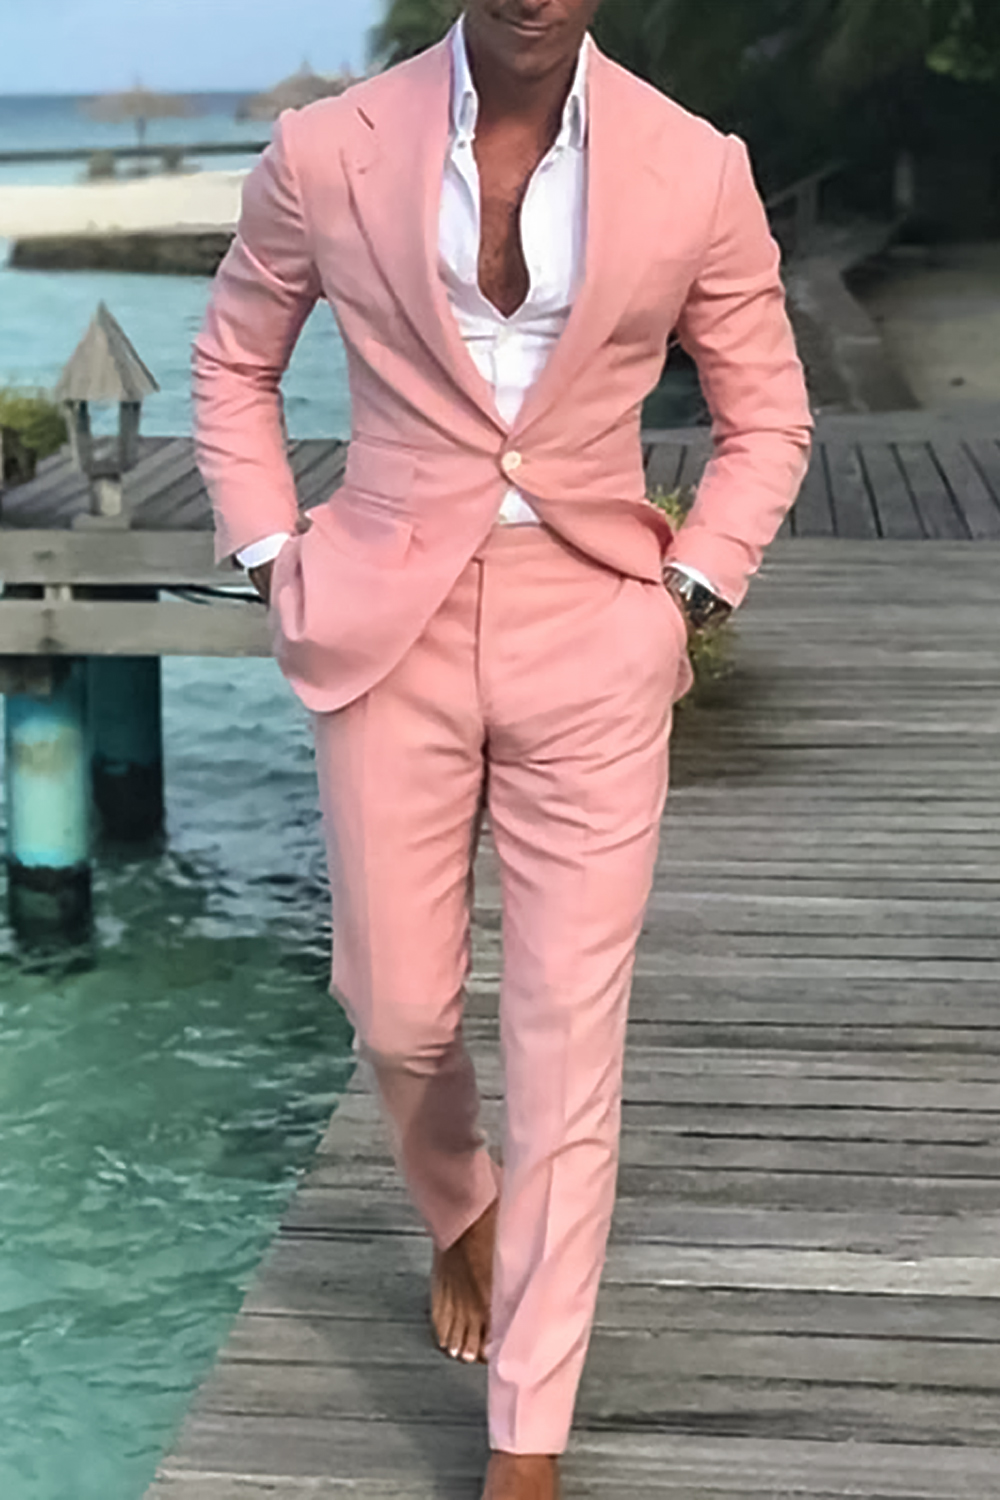 men wearing a relaxed wedding suit on beach